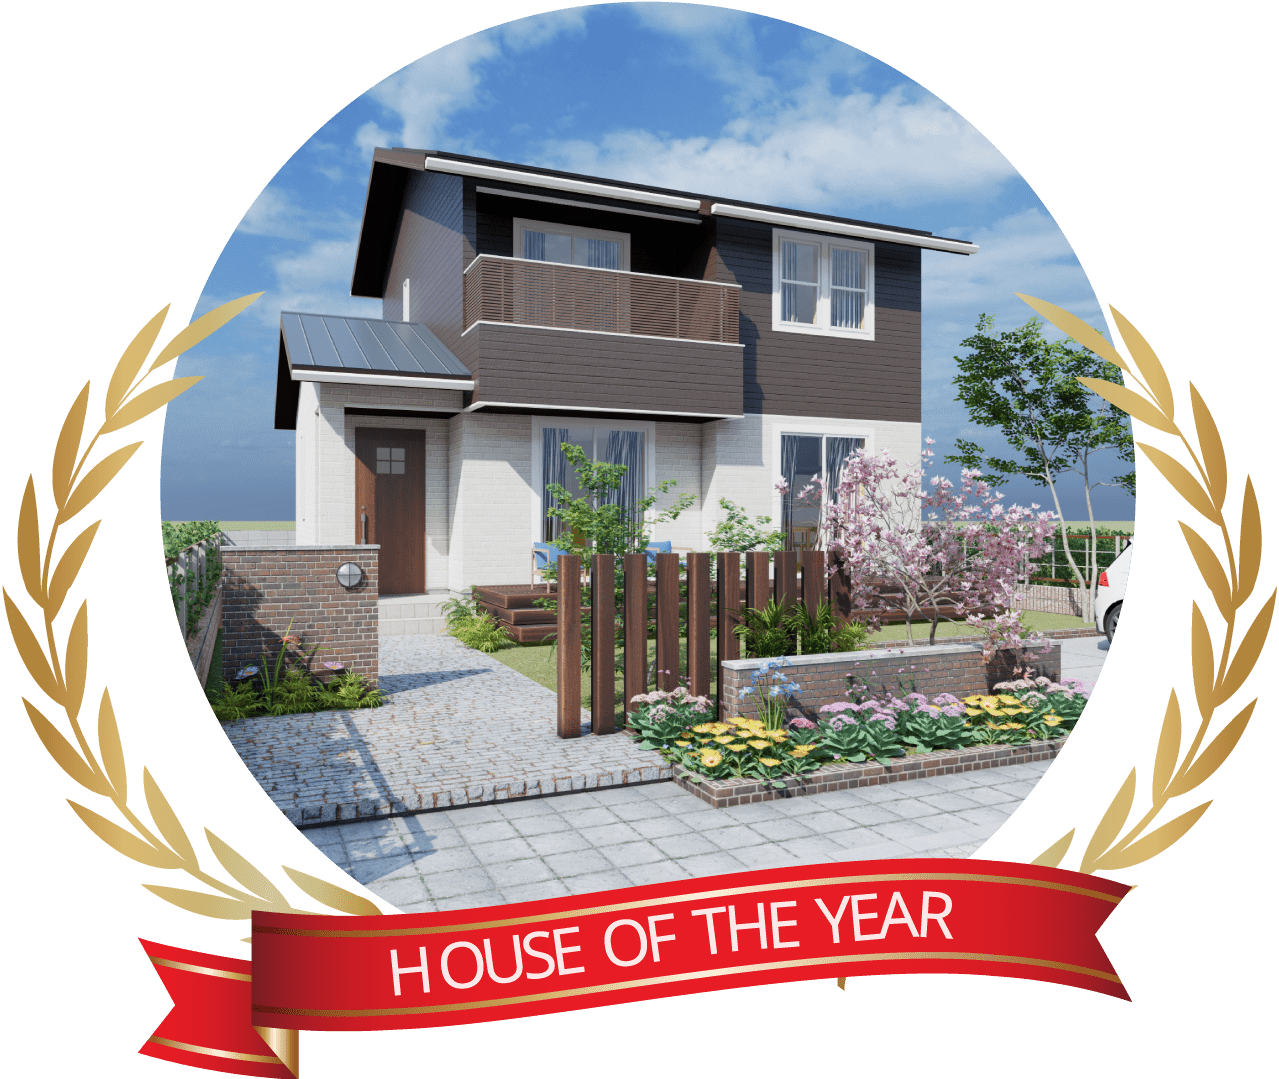 HOUSE OF THE YEAR